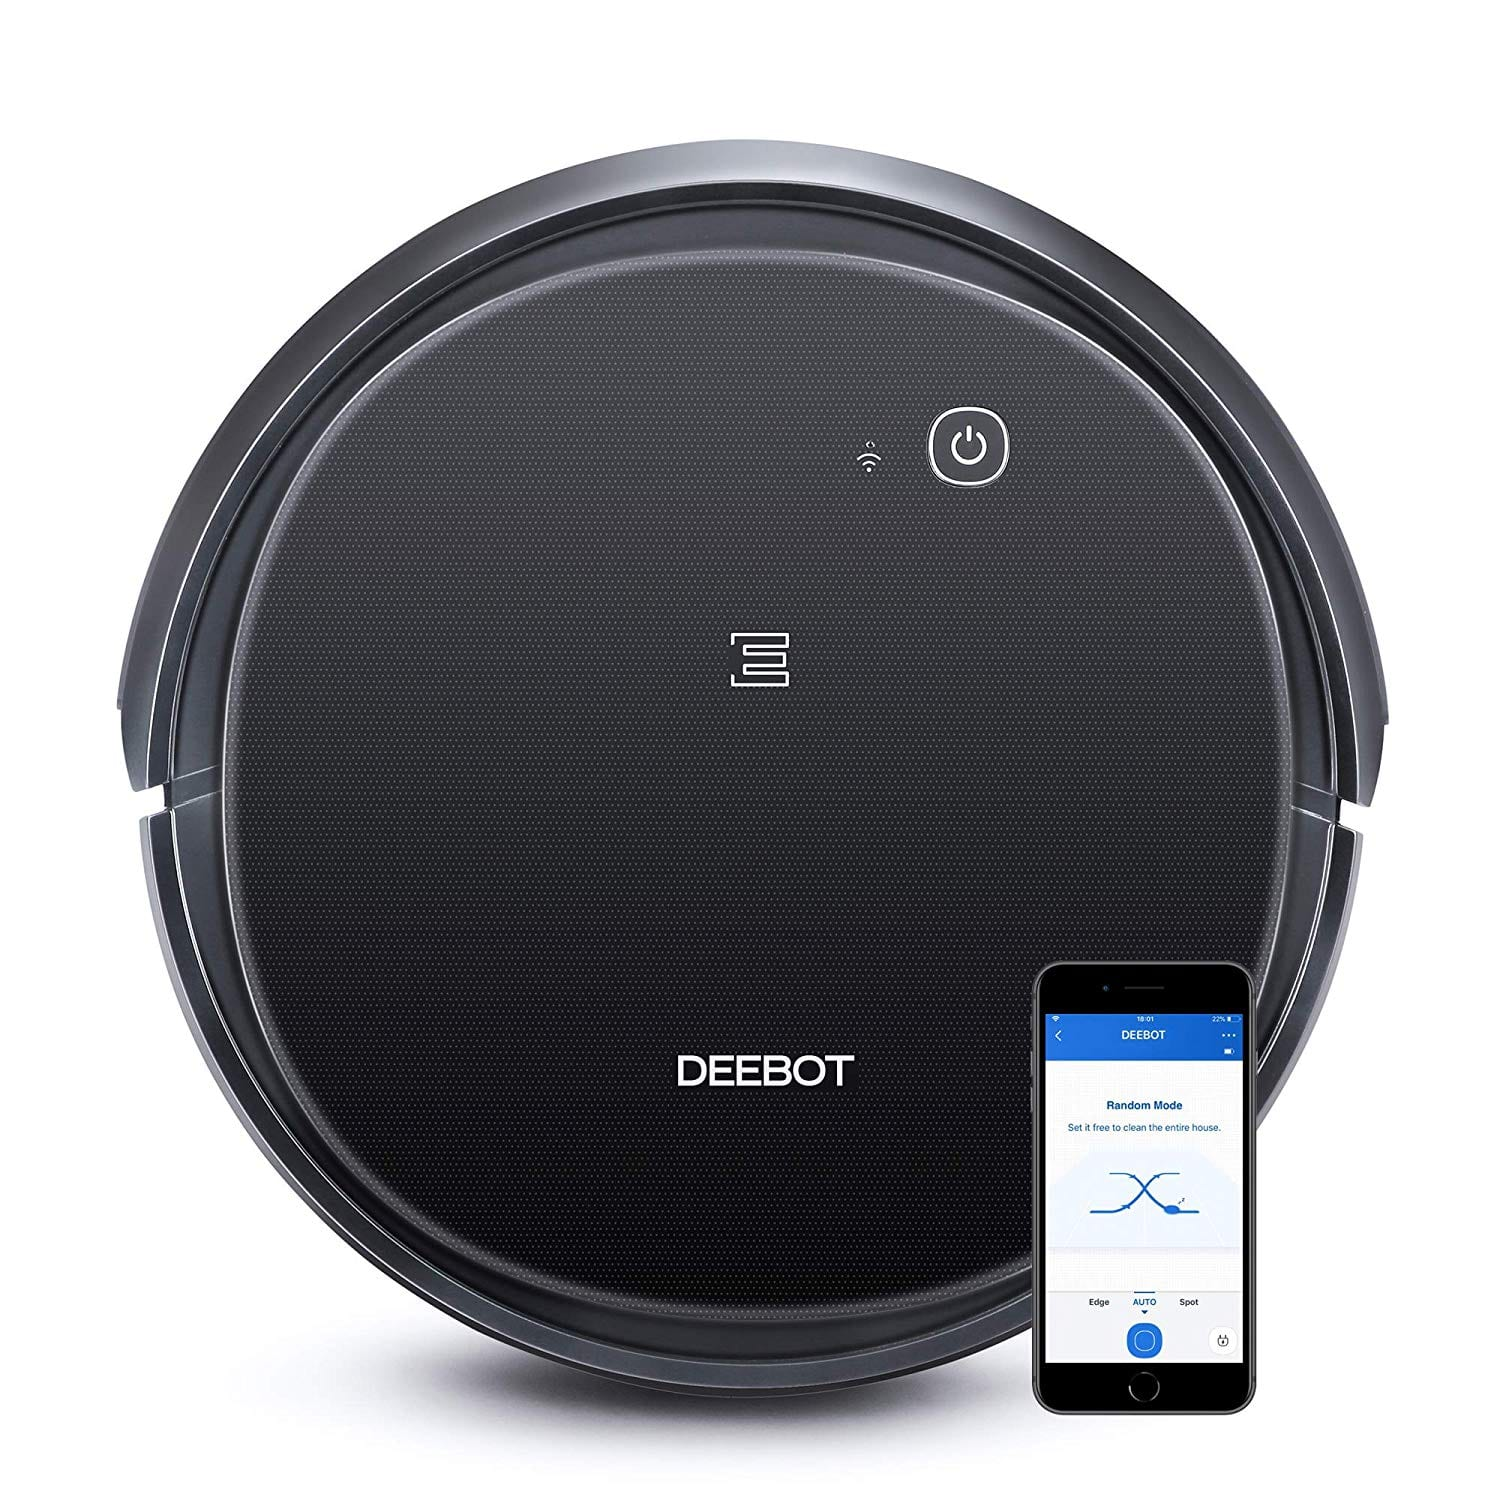 ECOVACS DEEBOT 500 Robotic Vacuum Cleaner with Max Power Suction, Up to 110 min Runtime, Hard Floors & Carpets, App Controls, Self-Charging, Quiet $189.99